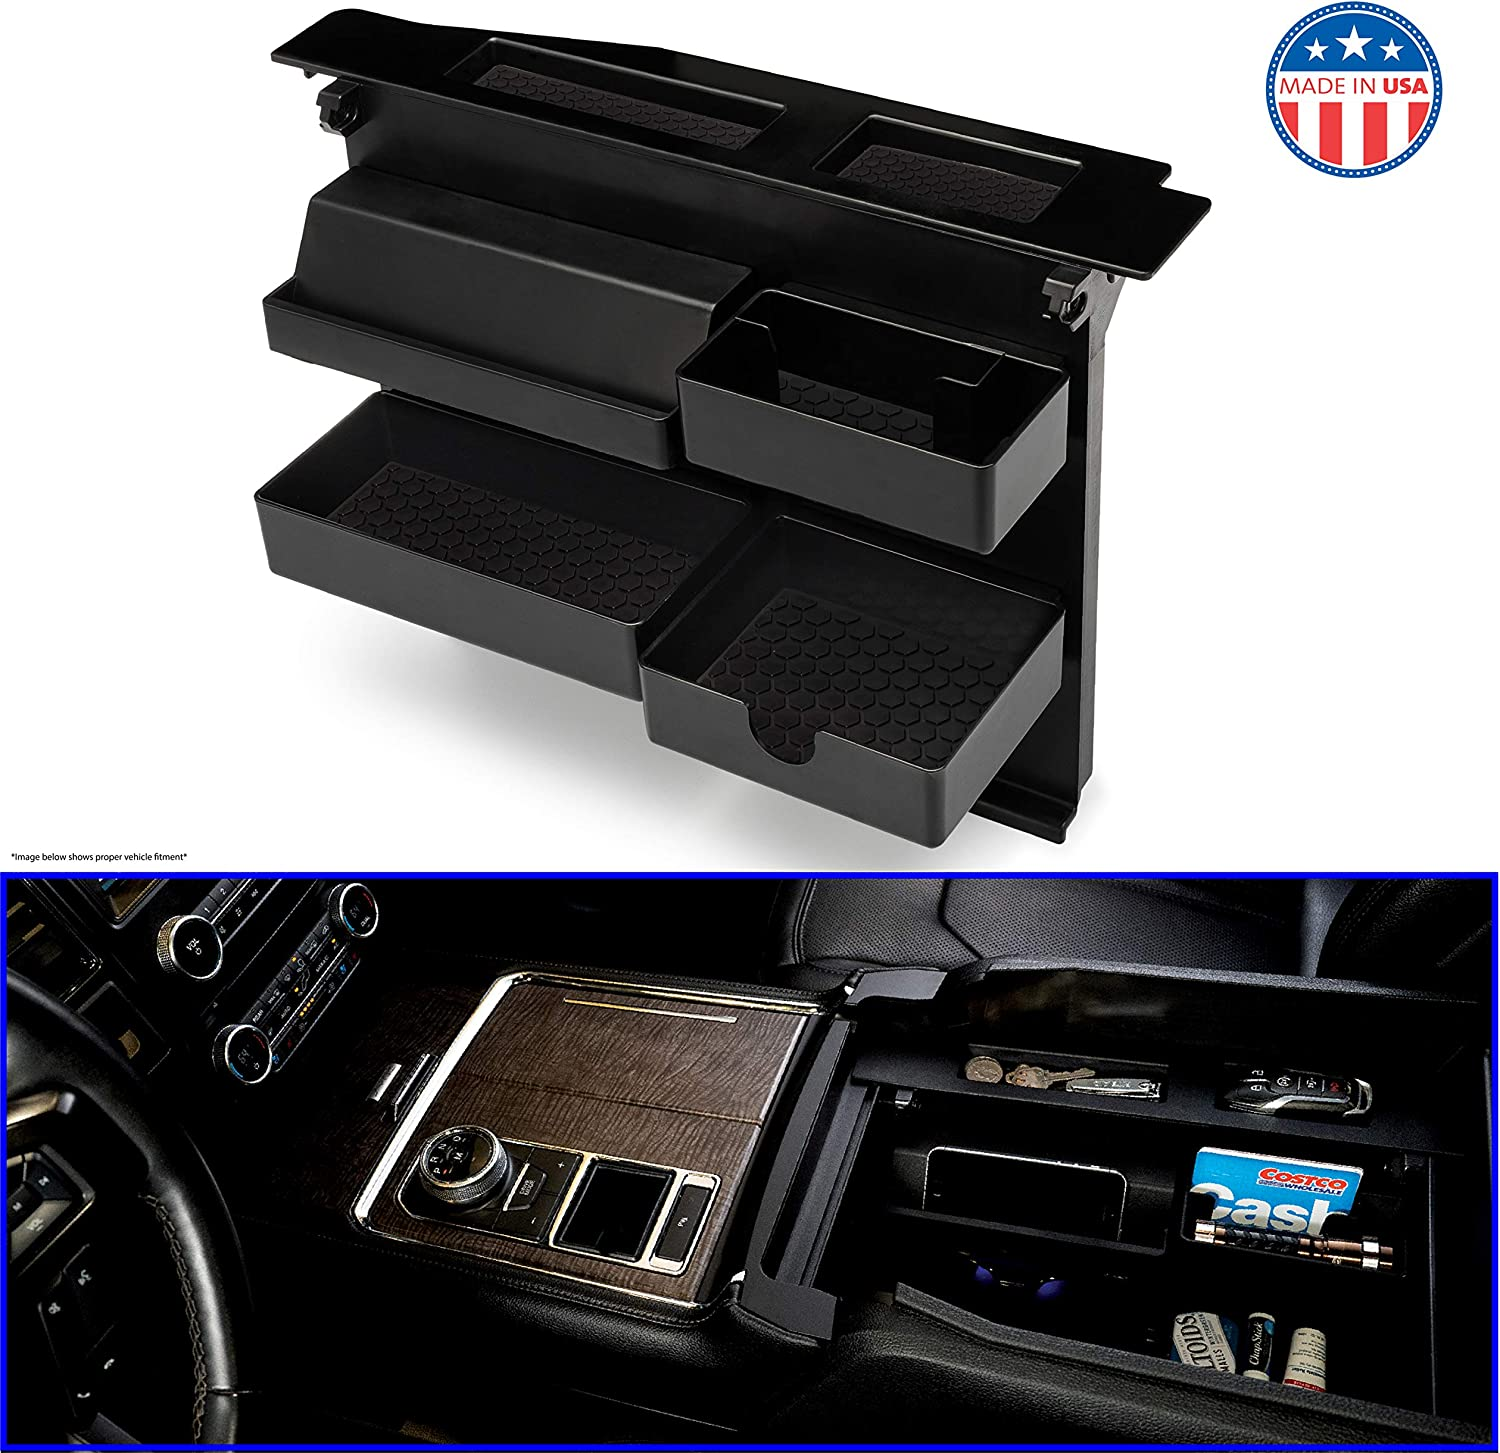 Raptor F350 | F250 | Fits ONLY Vehicle w Bucket Seats 2018-2020 | Expedition 2015-2020 MX Auto-Salient Console Organizer for Select Ford Trucks /& SUVs-Compatible with |Ford F150 2017-2020